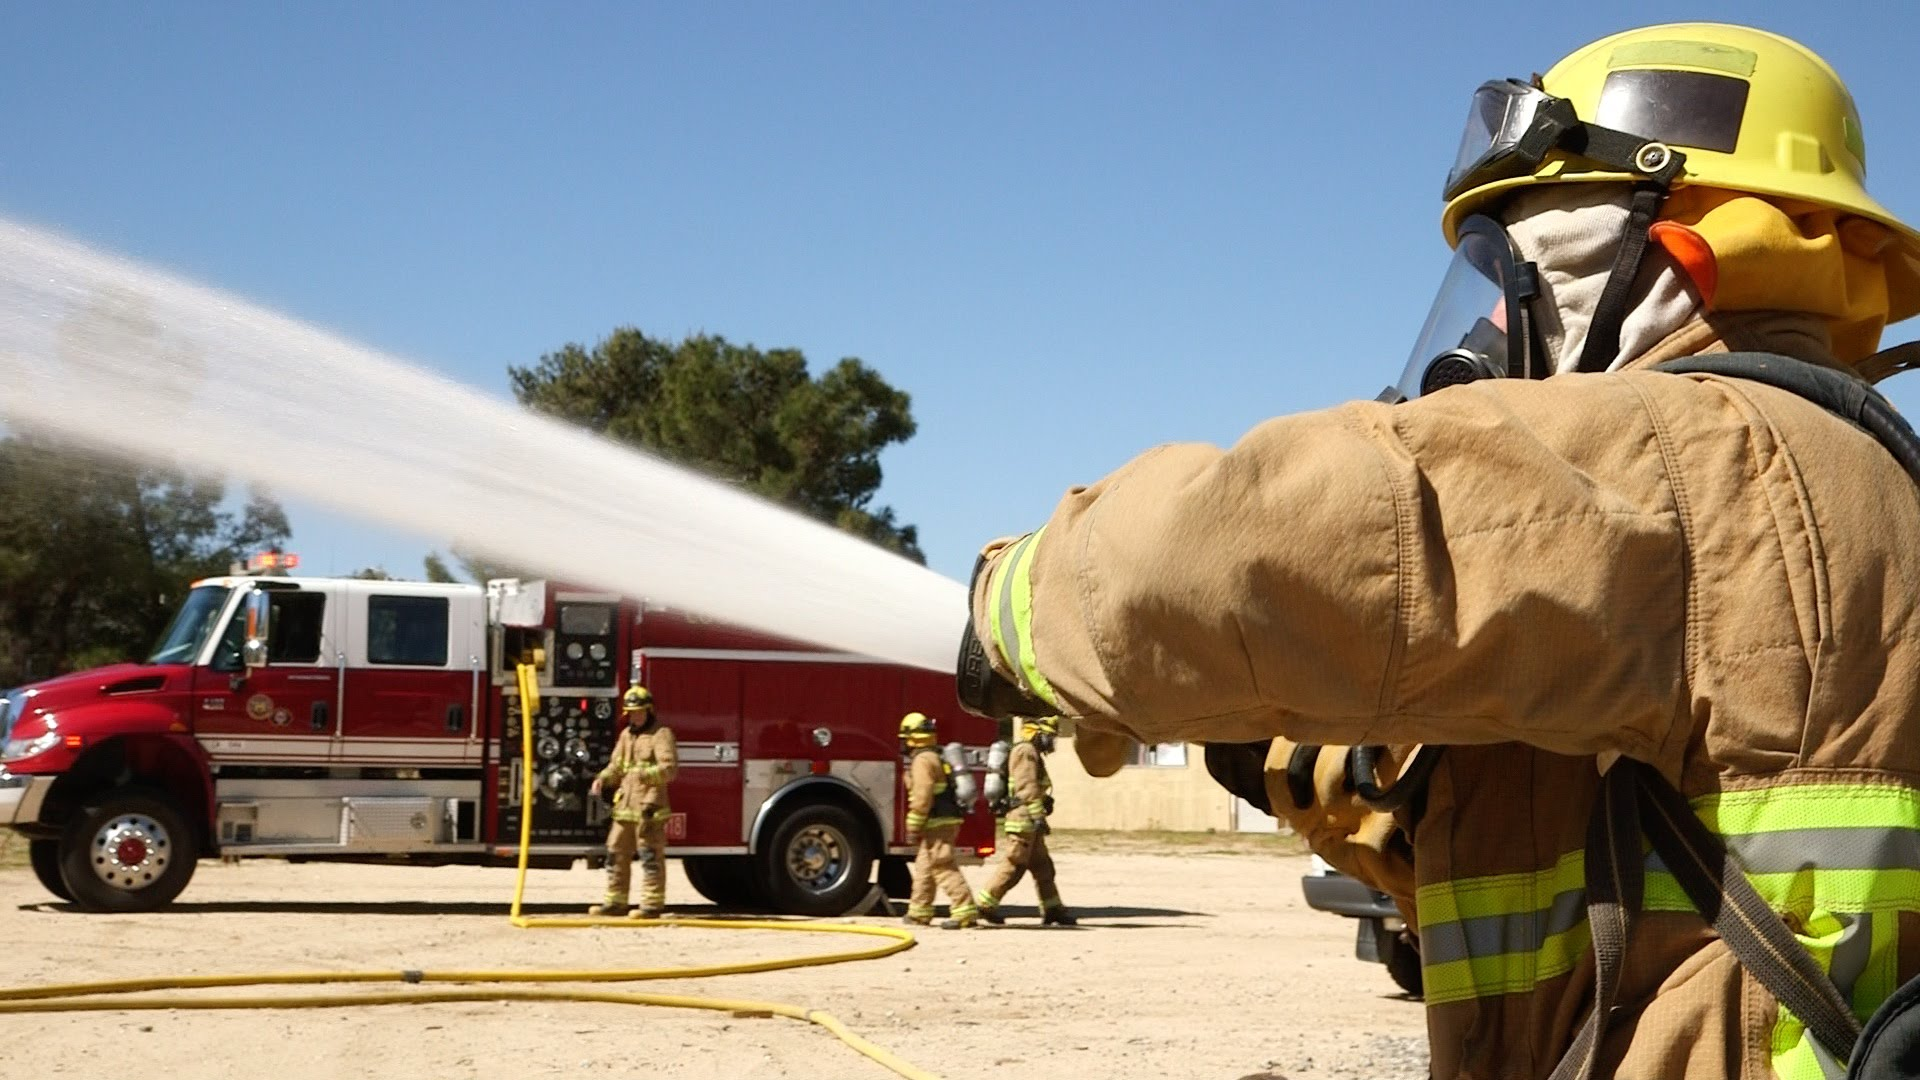 Reserve Firefighters Vital to Rural Communities